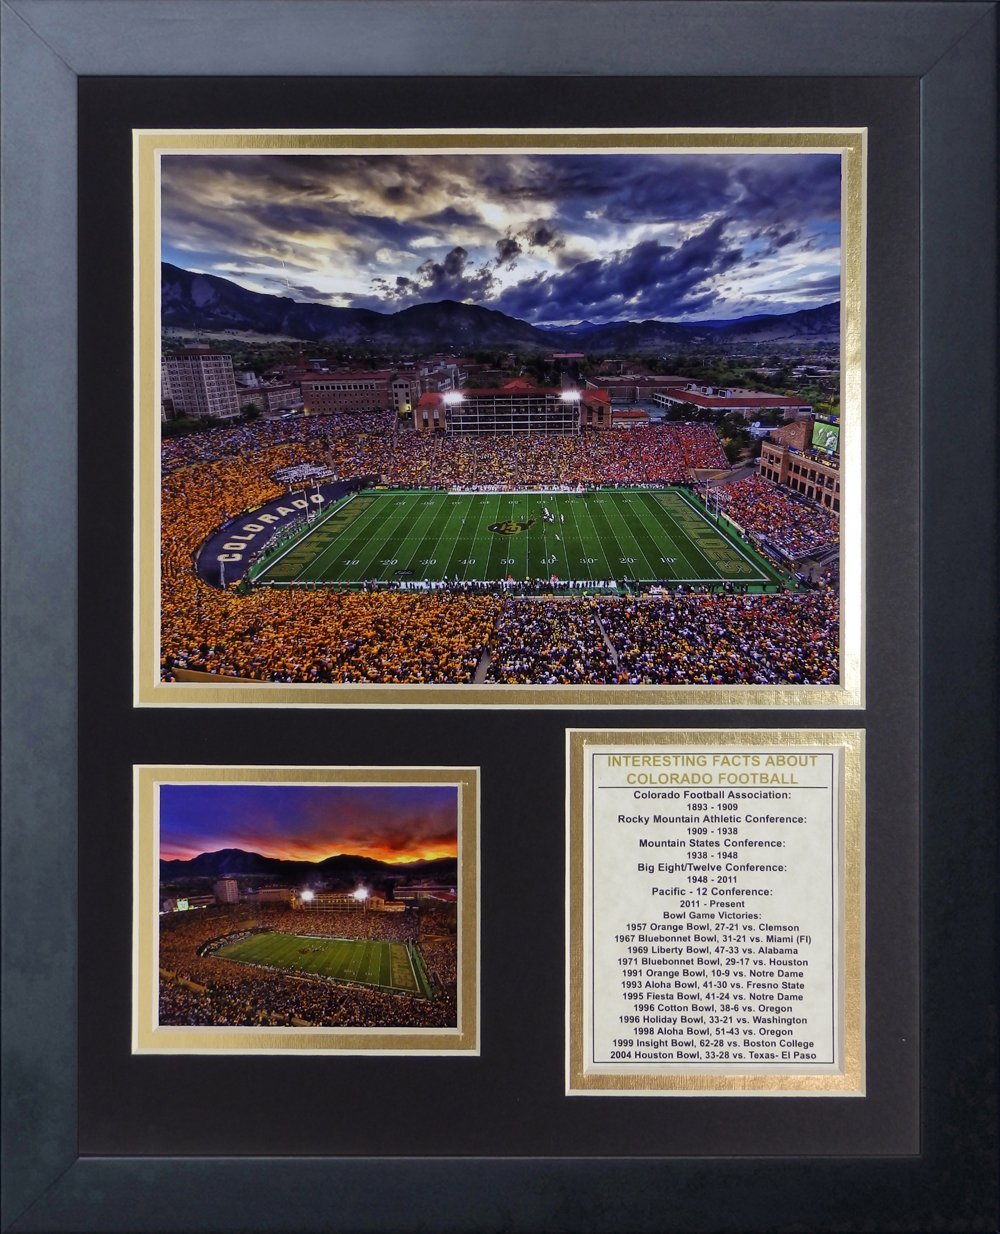 11 x 14 Legends Never Die Folsom Stadium Colorado University Framed Photo Collage